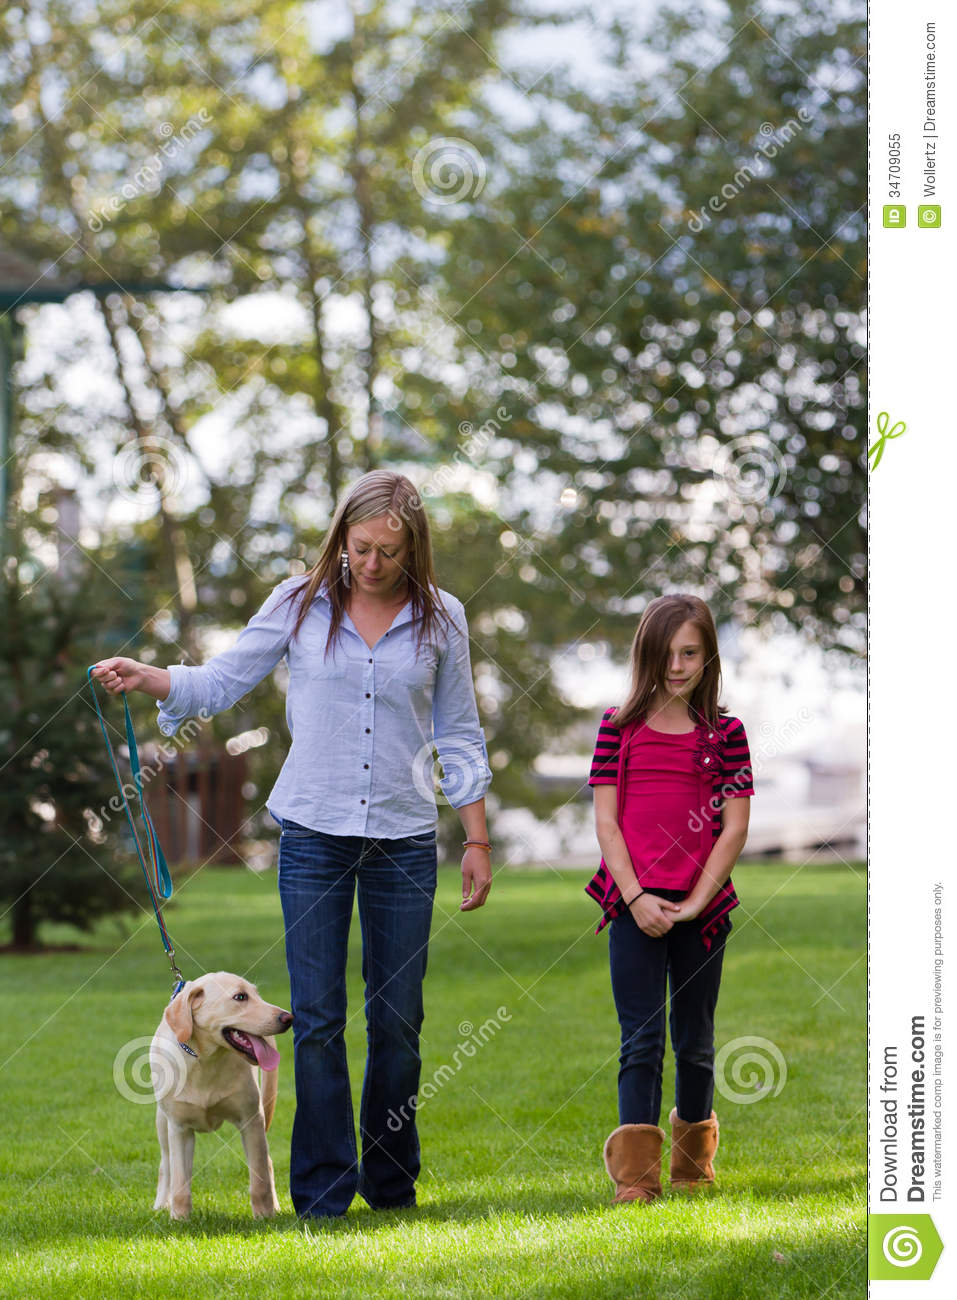 Golden Retriever Mother And Daughter Stock Photos - Image ... |Dog Mom And Daughter